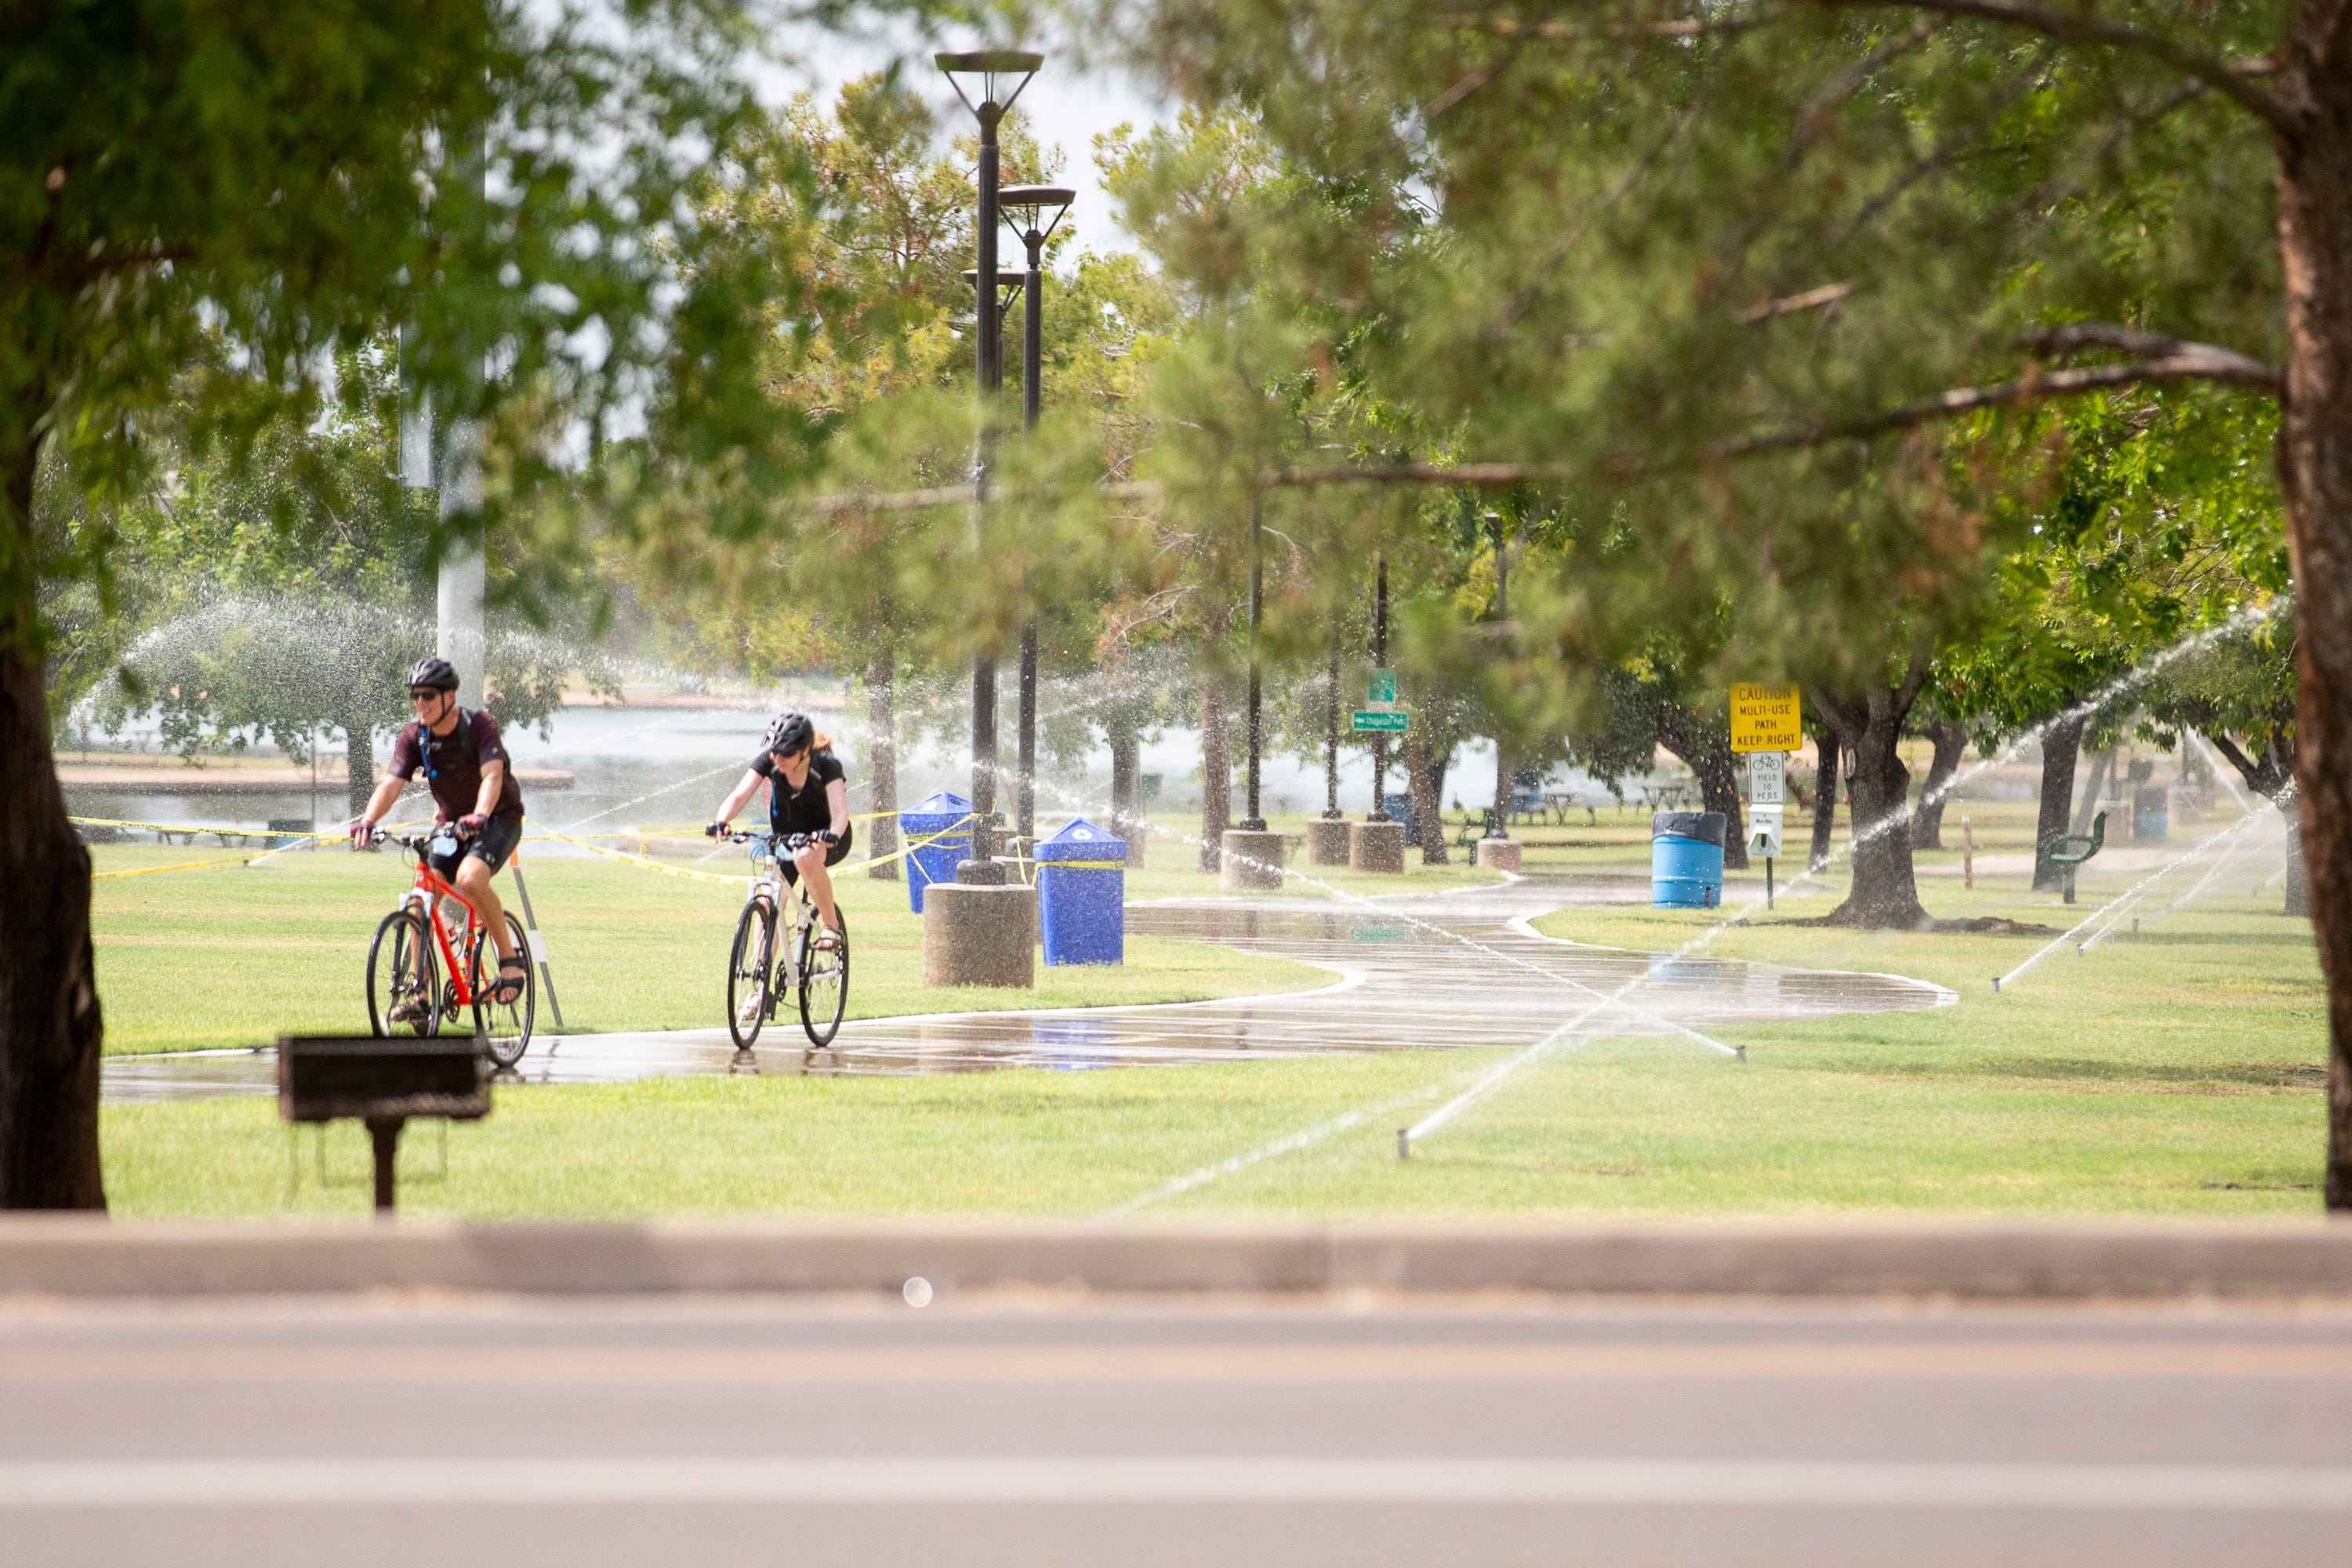 Bicyclists enjoy a ride through sprinklers at Chaparral Park in Scottsdale on July 13, 2020. The temperature for the day was expected to reach a high of 112 degrees Fahrenheit.